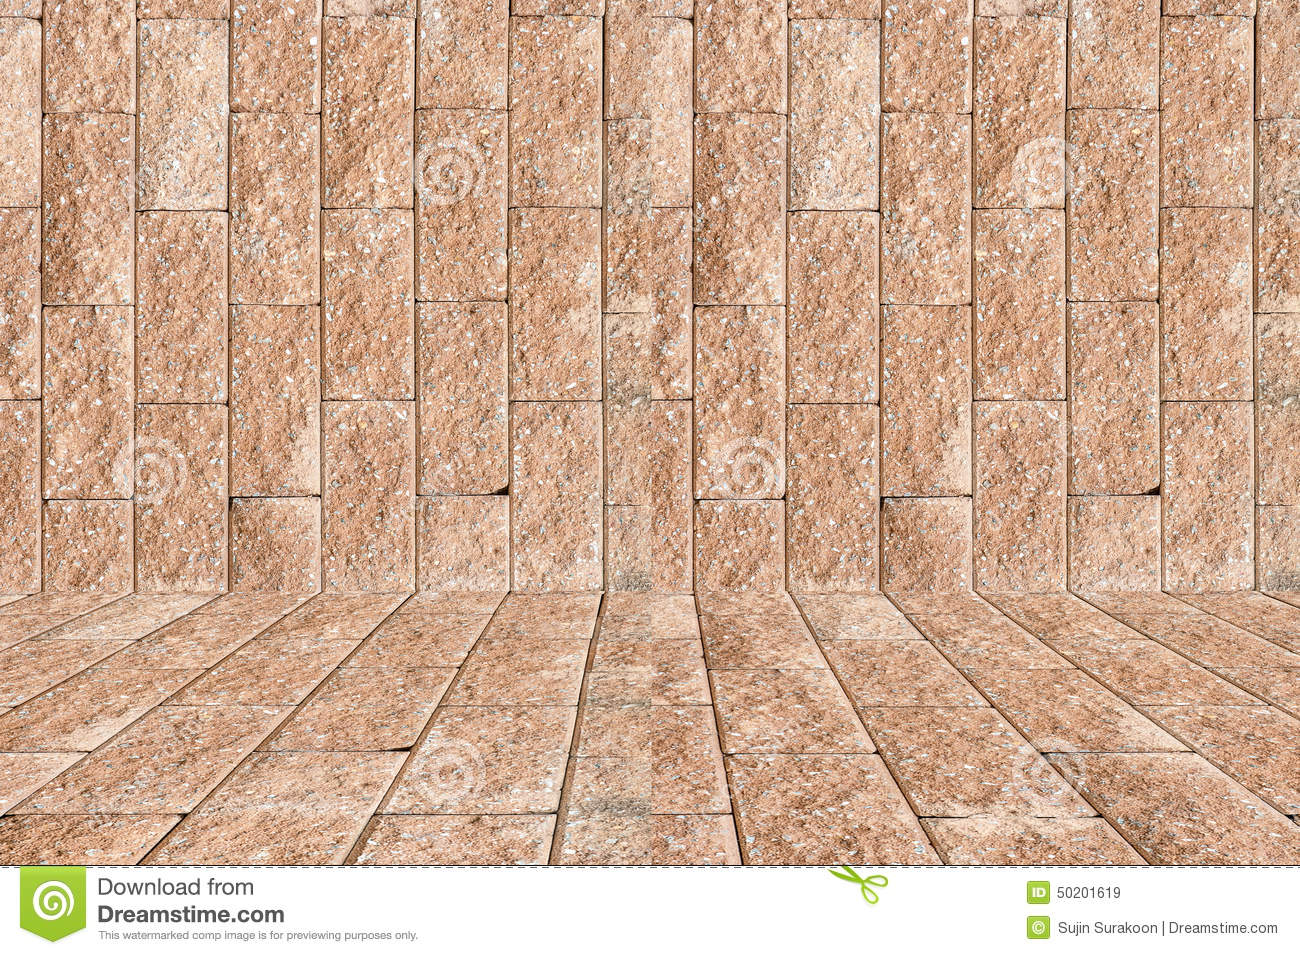 Laterite stone brick wall stock images image 35510874 - Laterite Stone Wall Background Royalty Free Stock Images